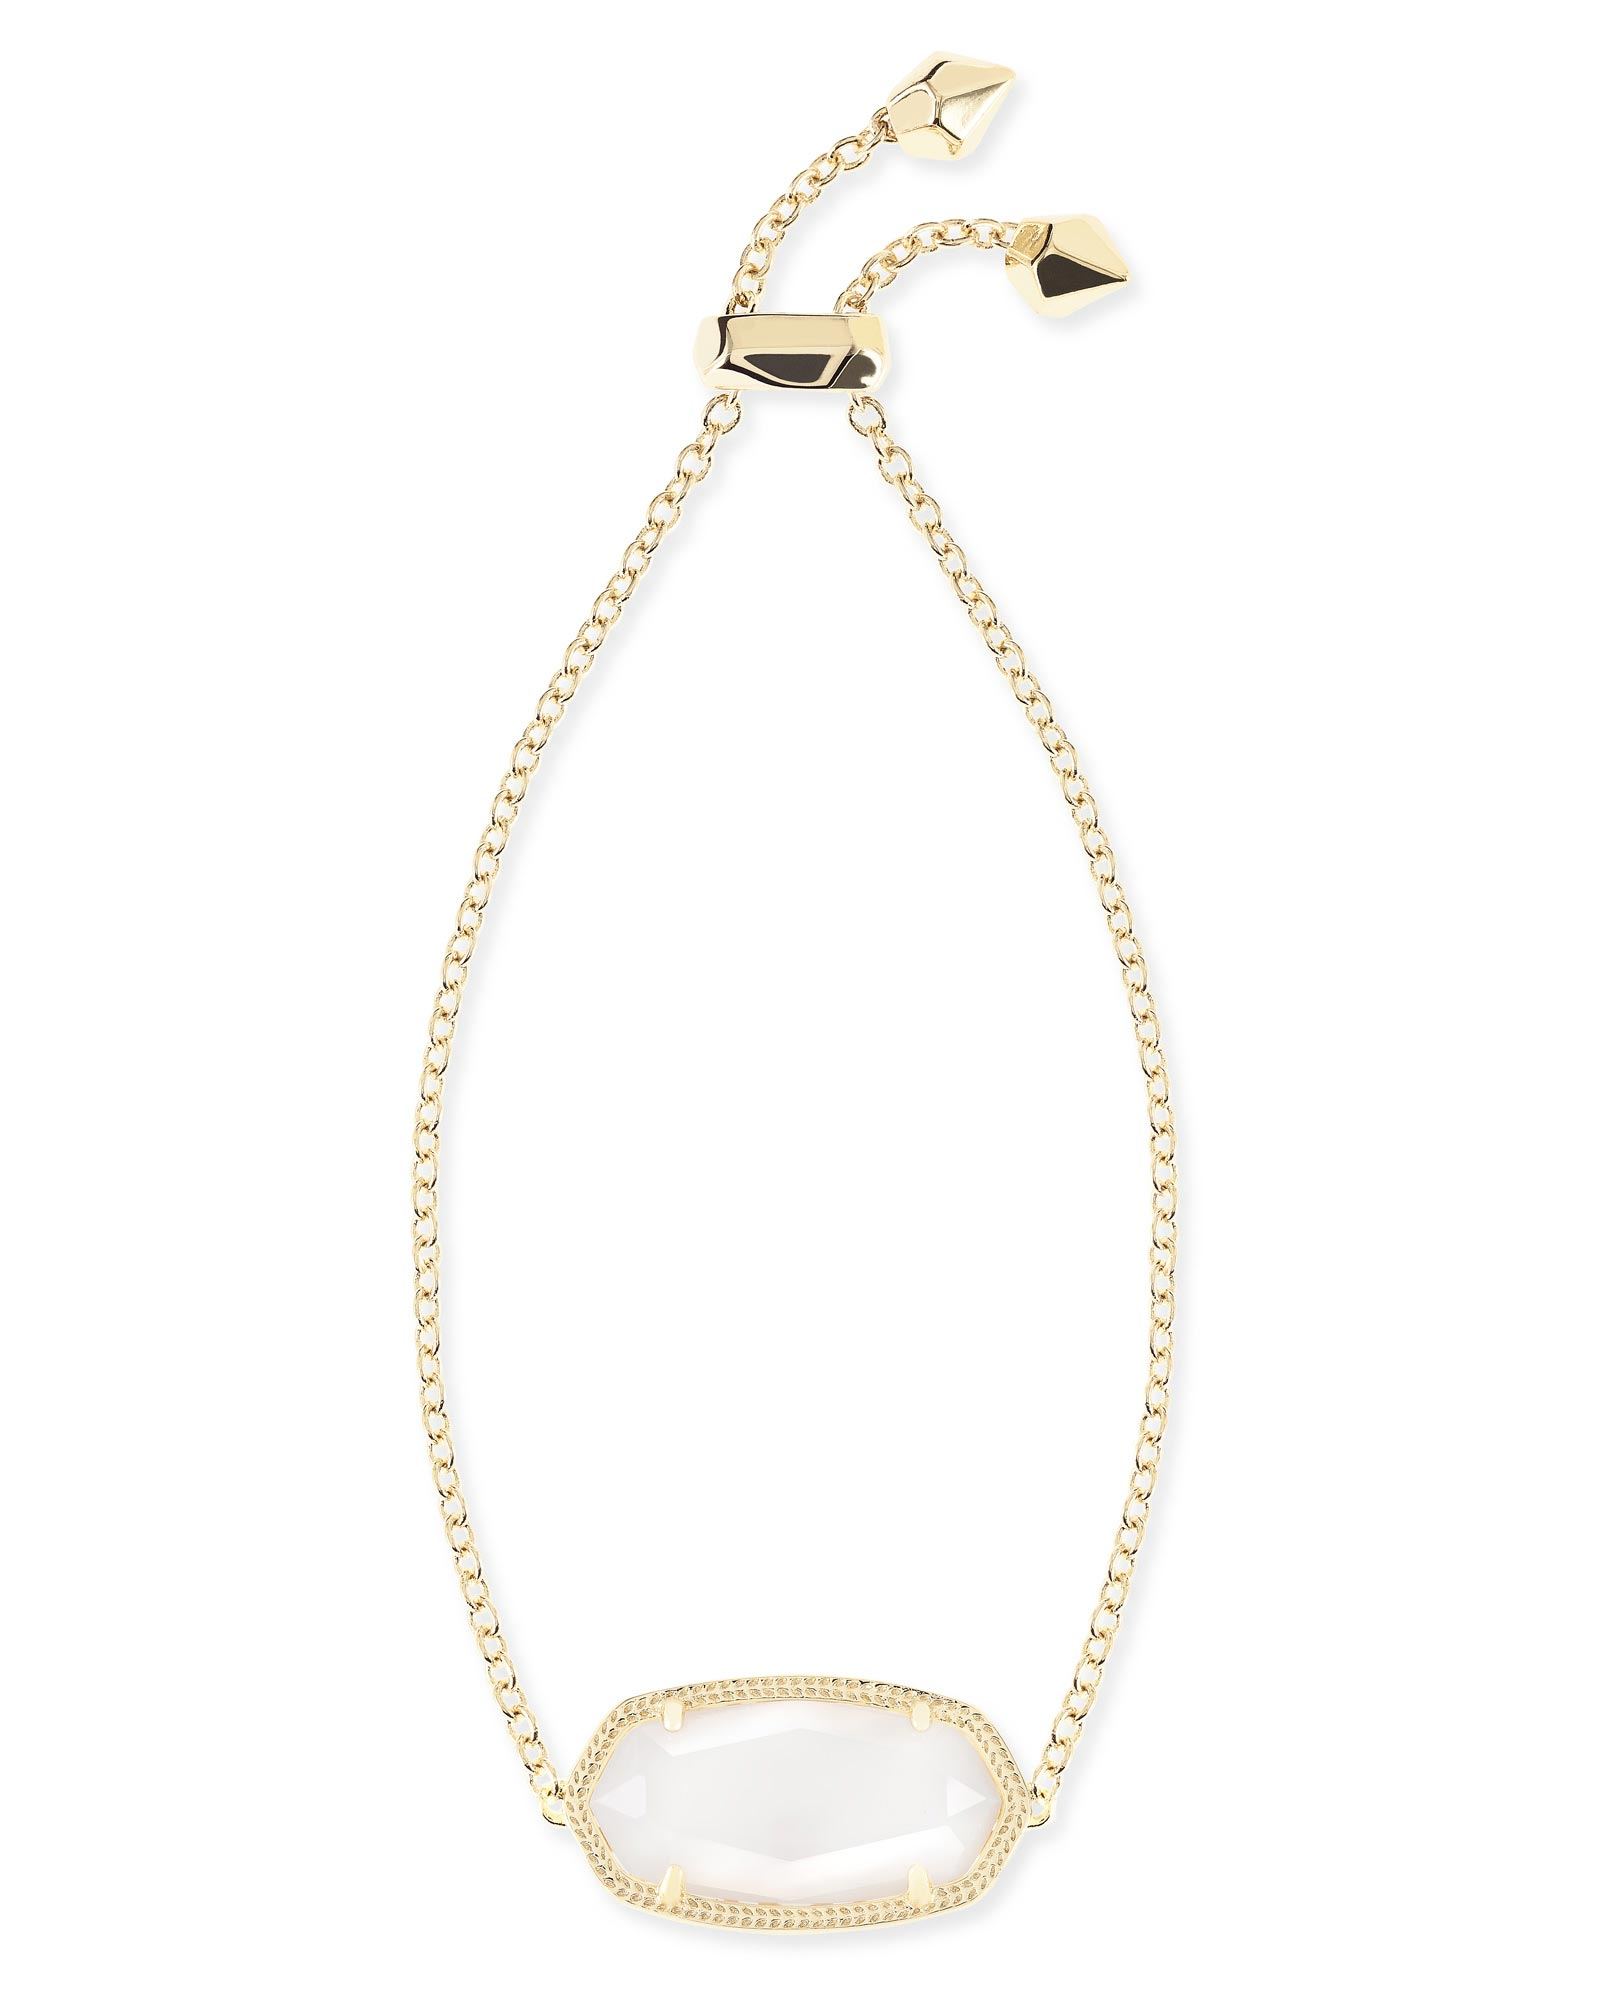 Daisy Gold Adjustable Chain Bracelet in White Pearl